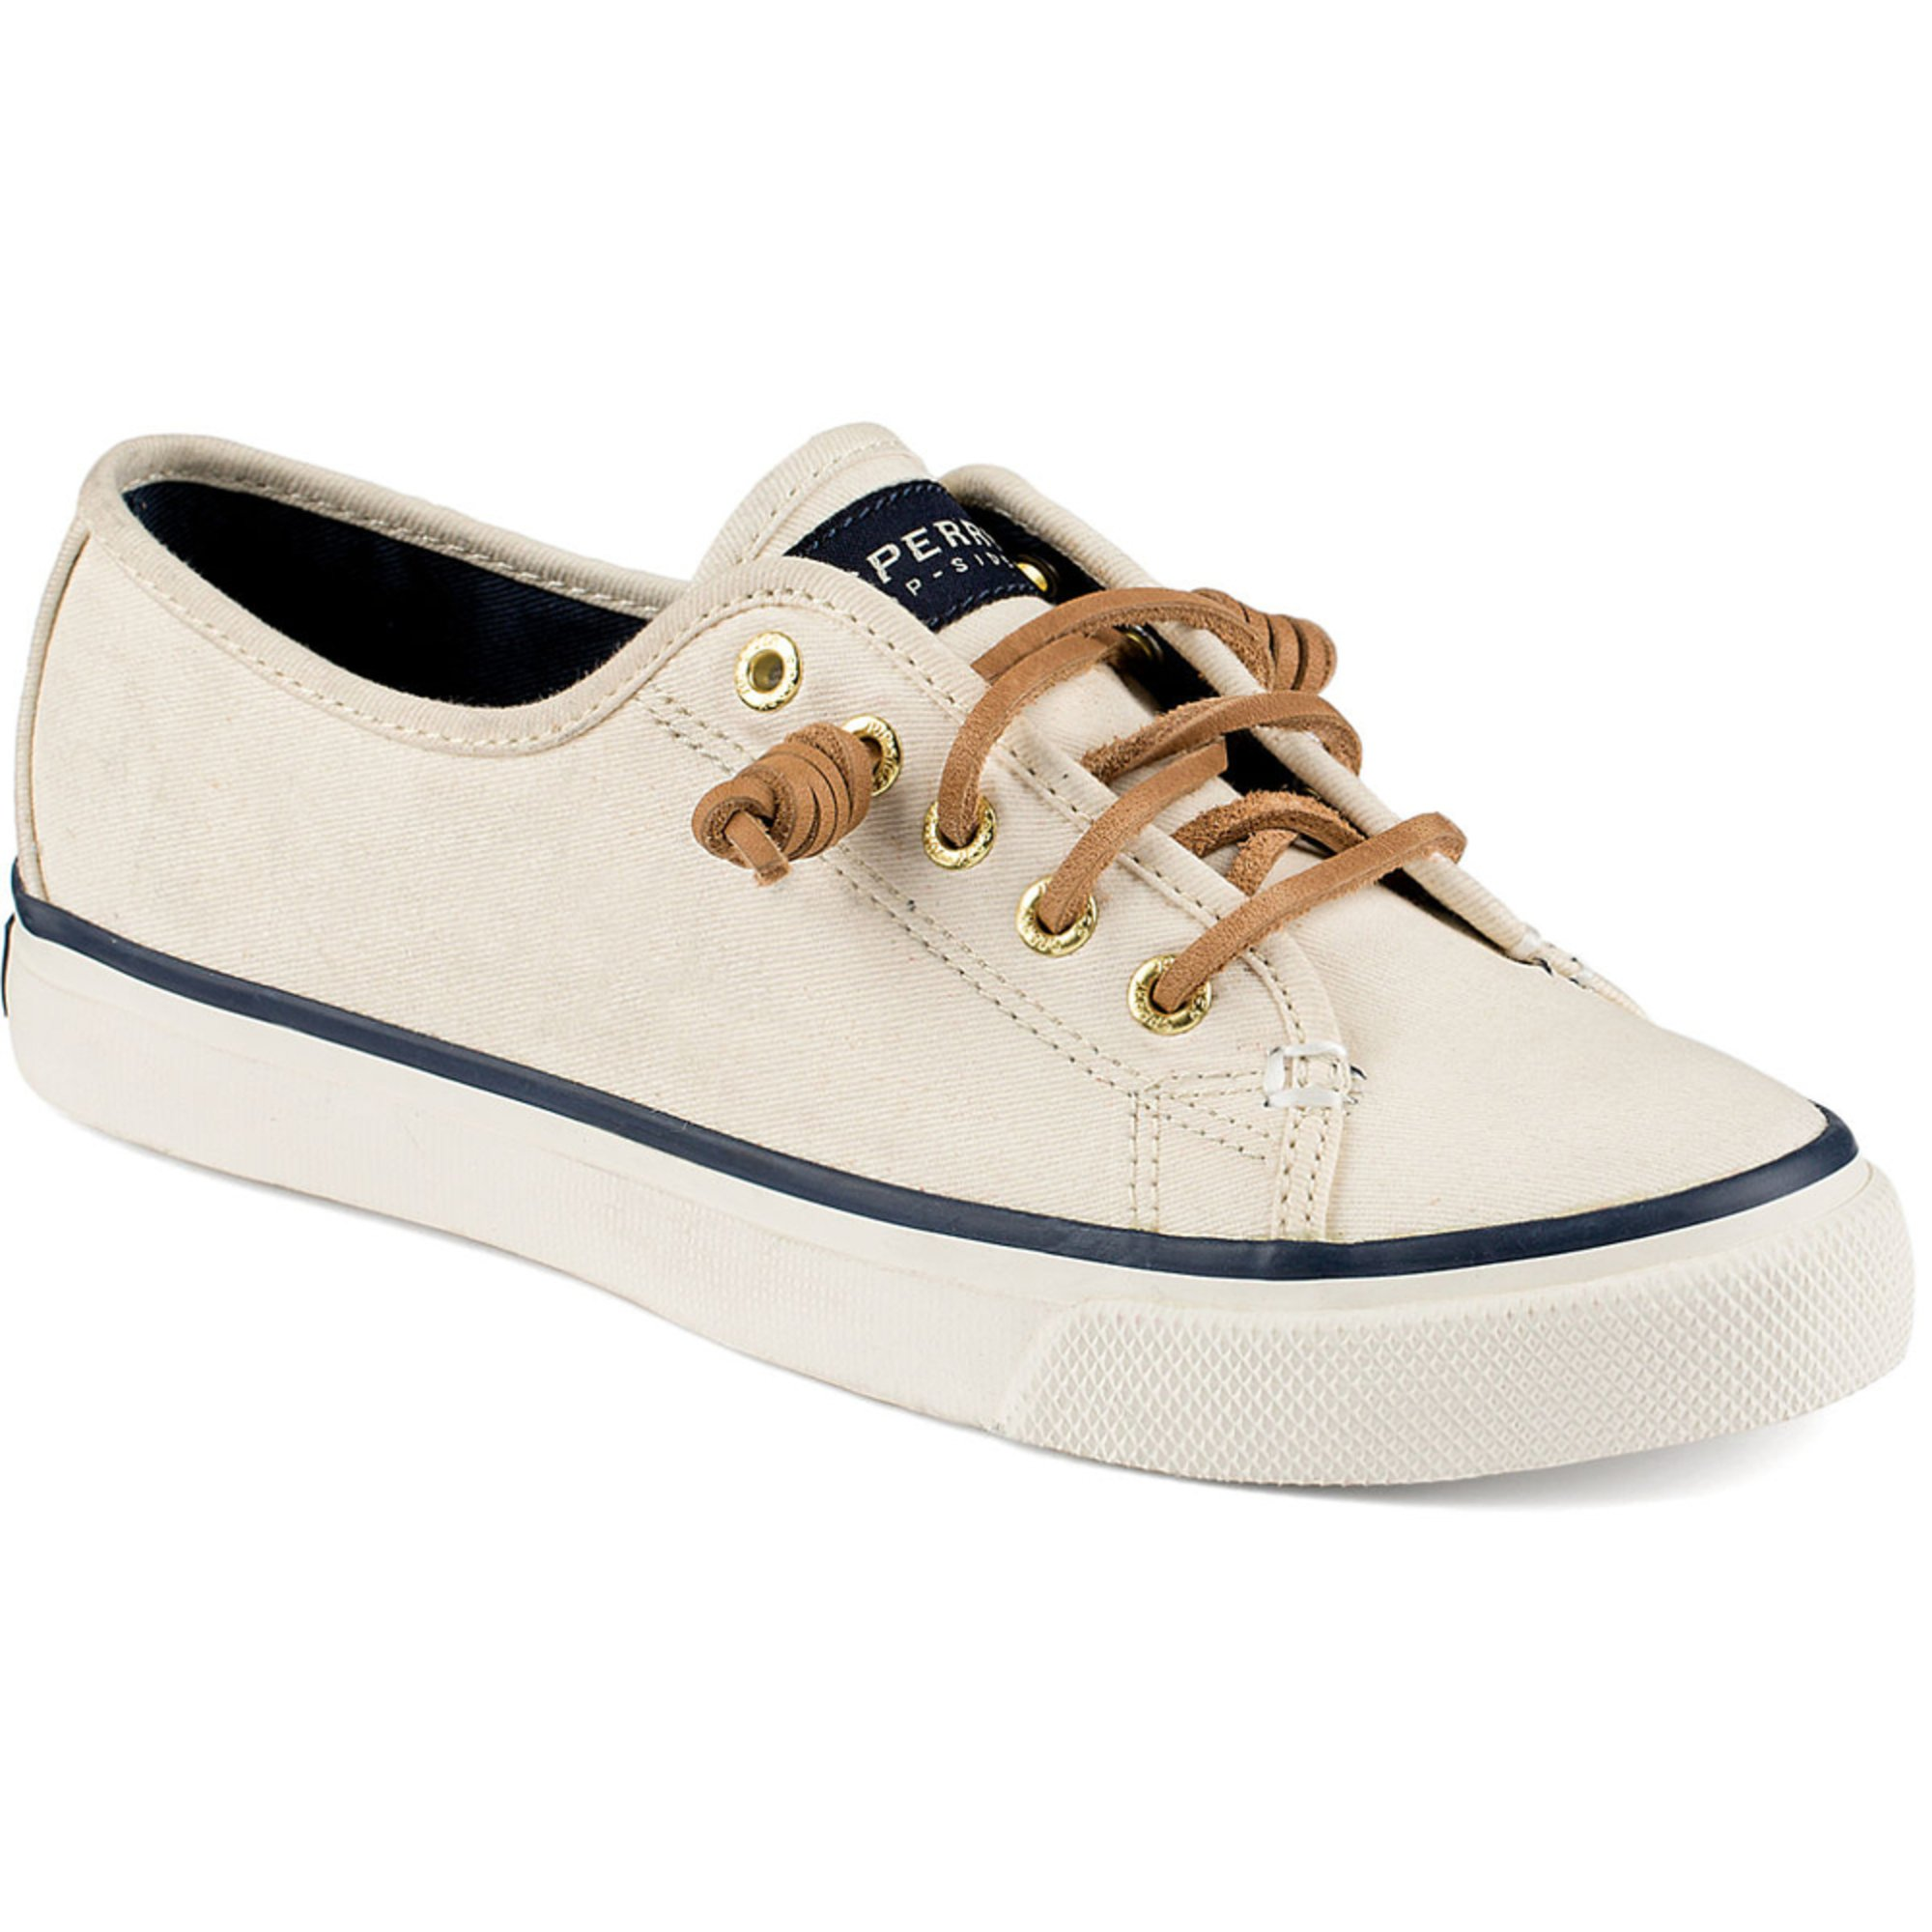 Sperry Top-Sider. Sperry Top-Sider Seacoast Canvas Women's Sneaker Ivory